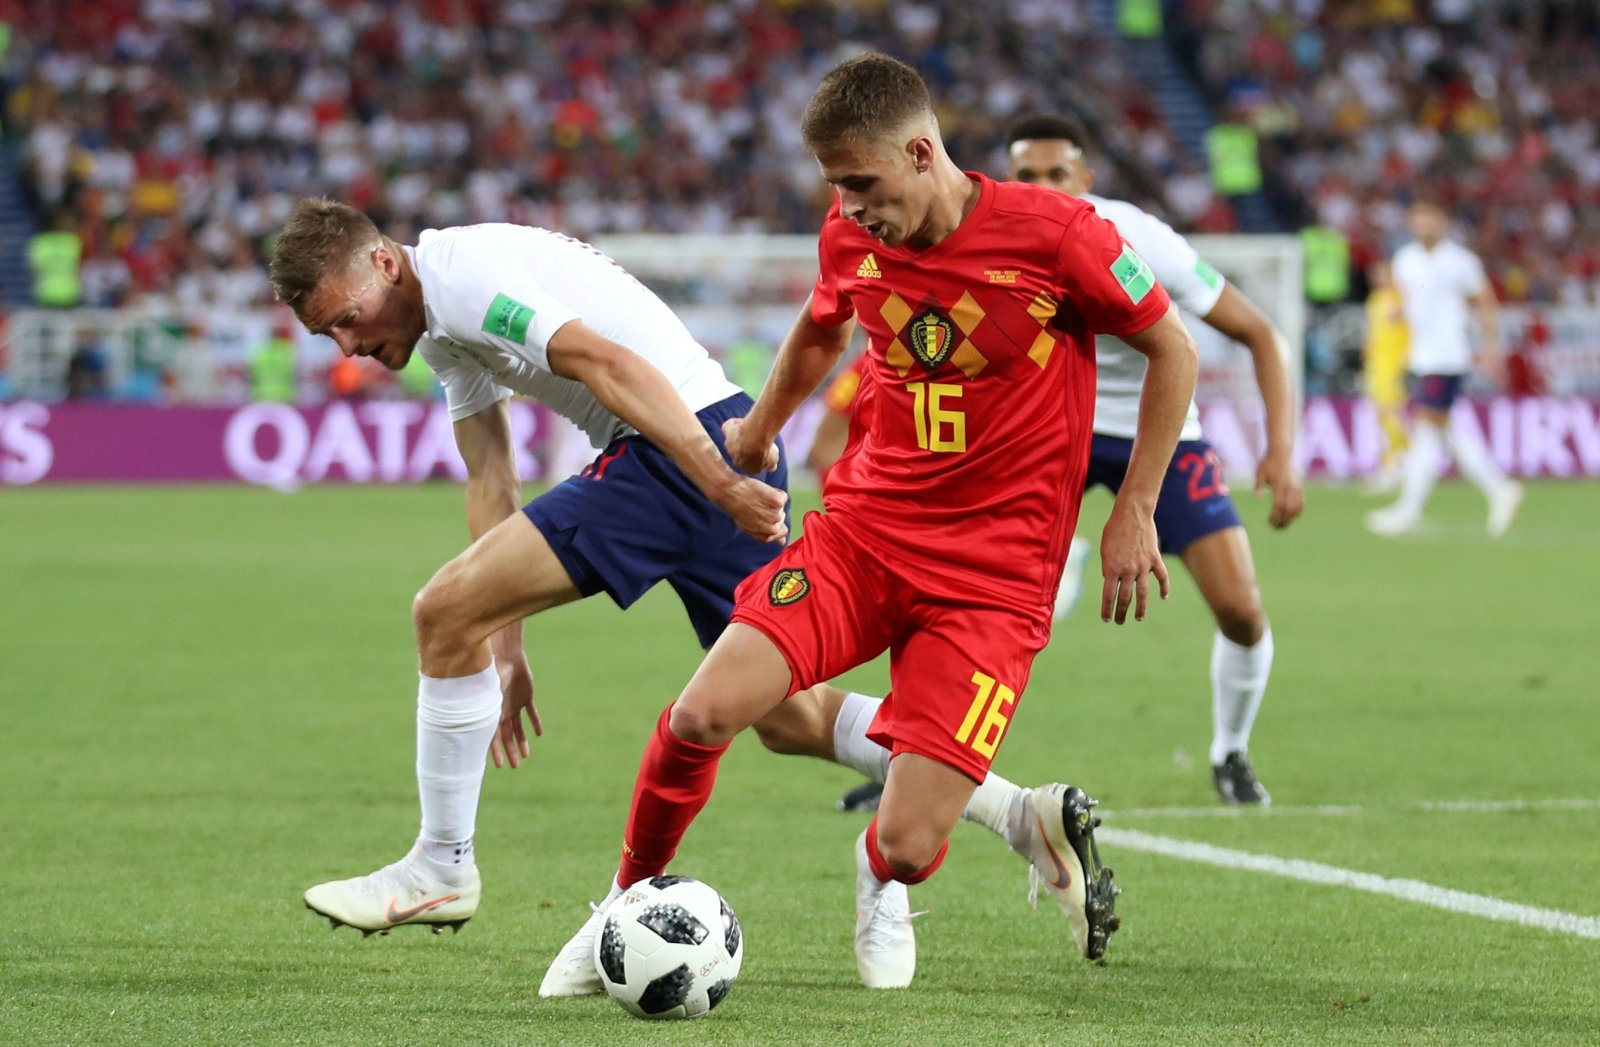 Thorgan Hazard could be a great addition for Tottenham